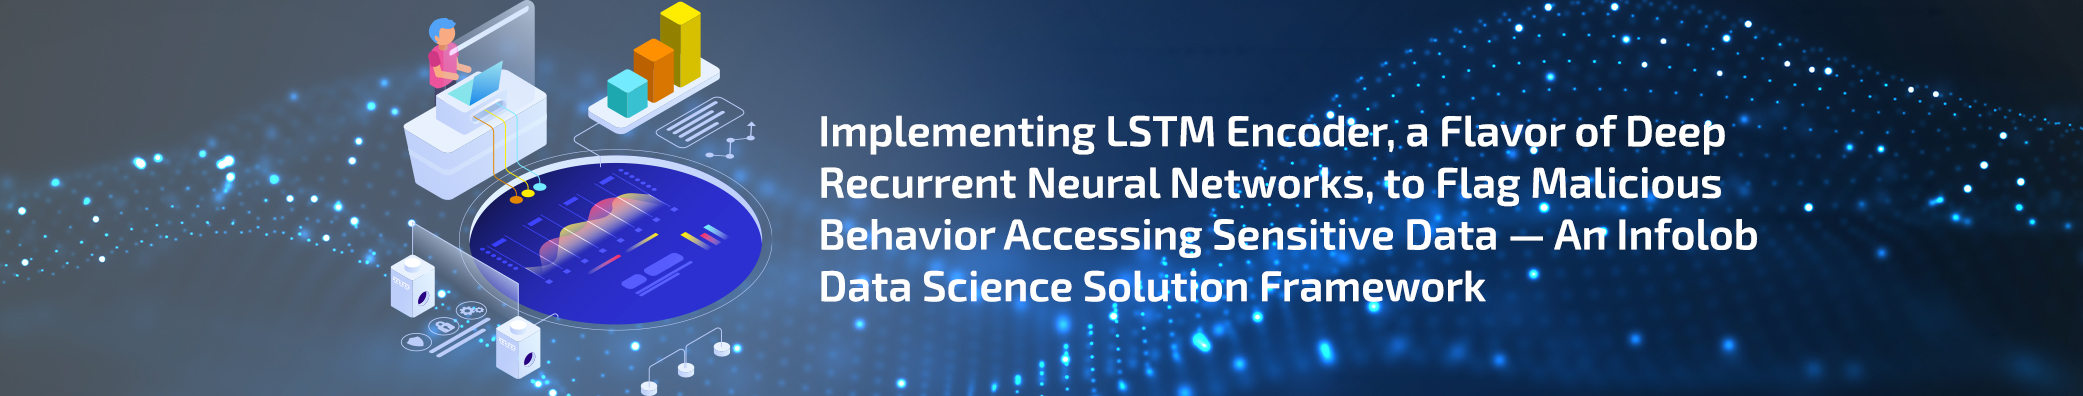 Implementation of LSTM Encoder to Strengthen Data Security Measures